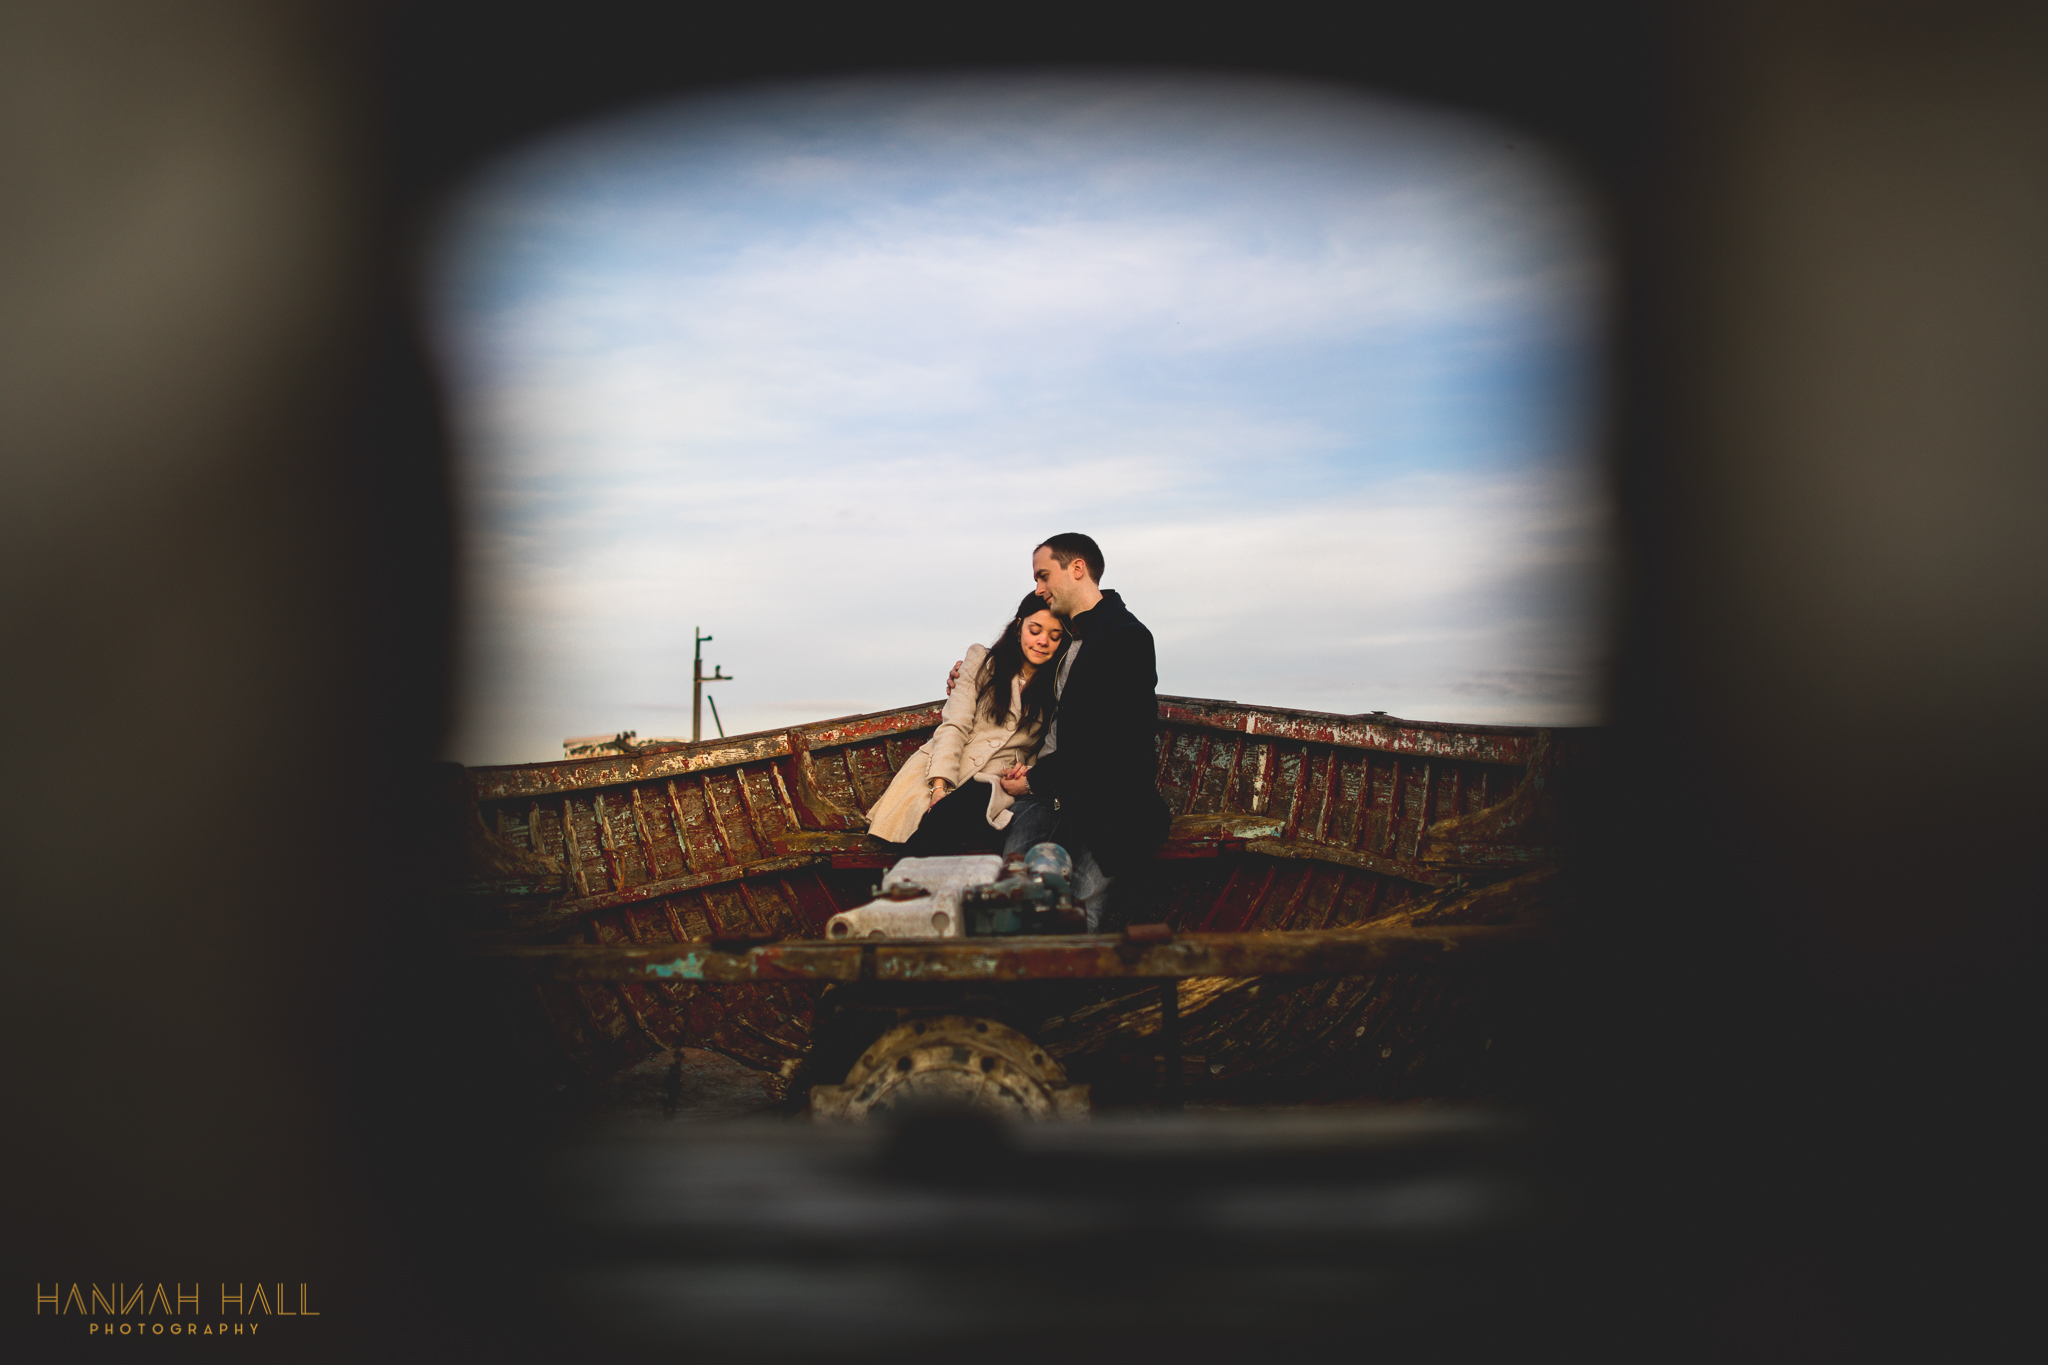 prewedding-photographs-do-we-need-them-1-11